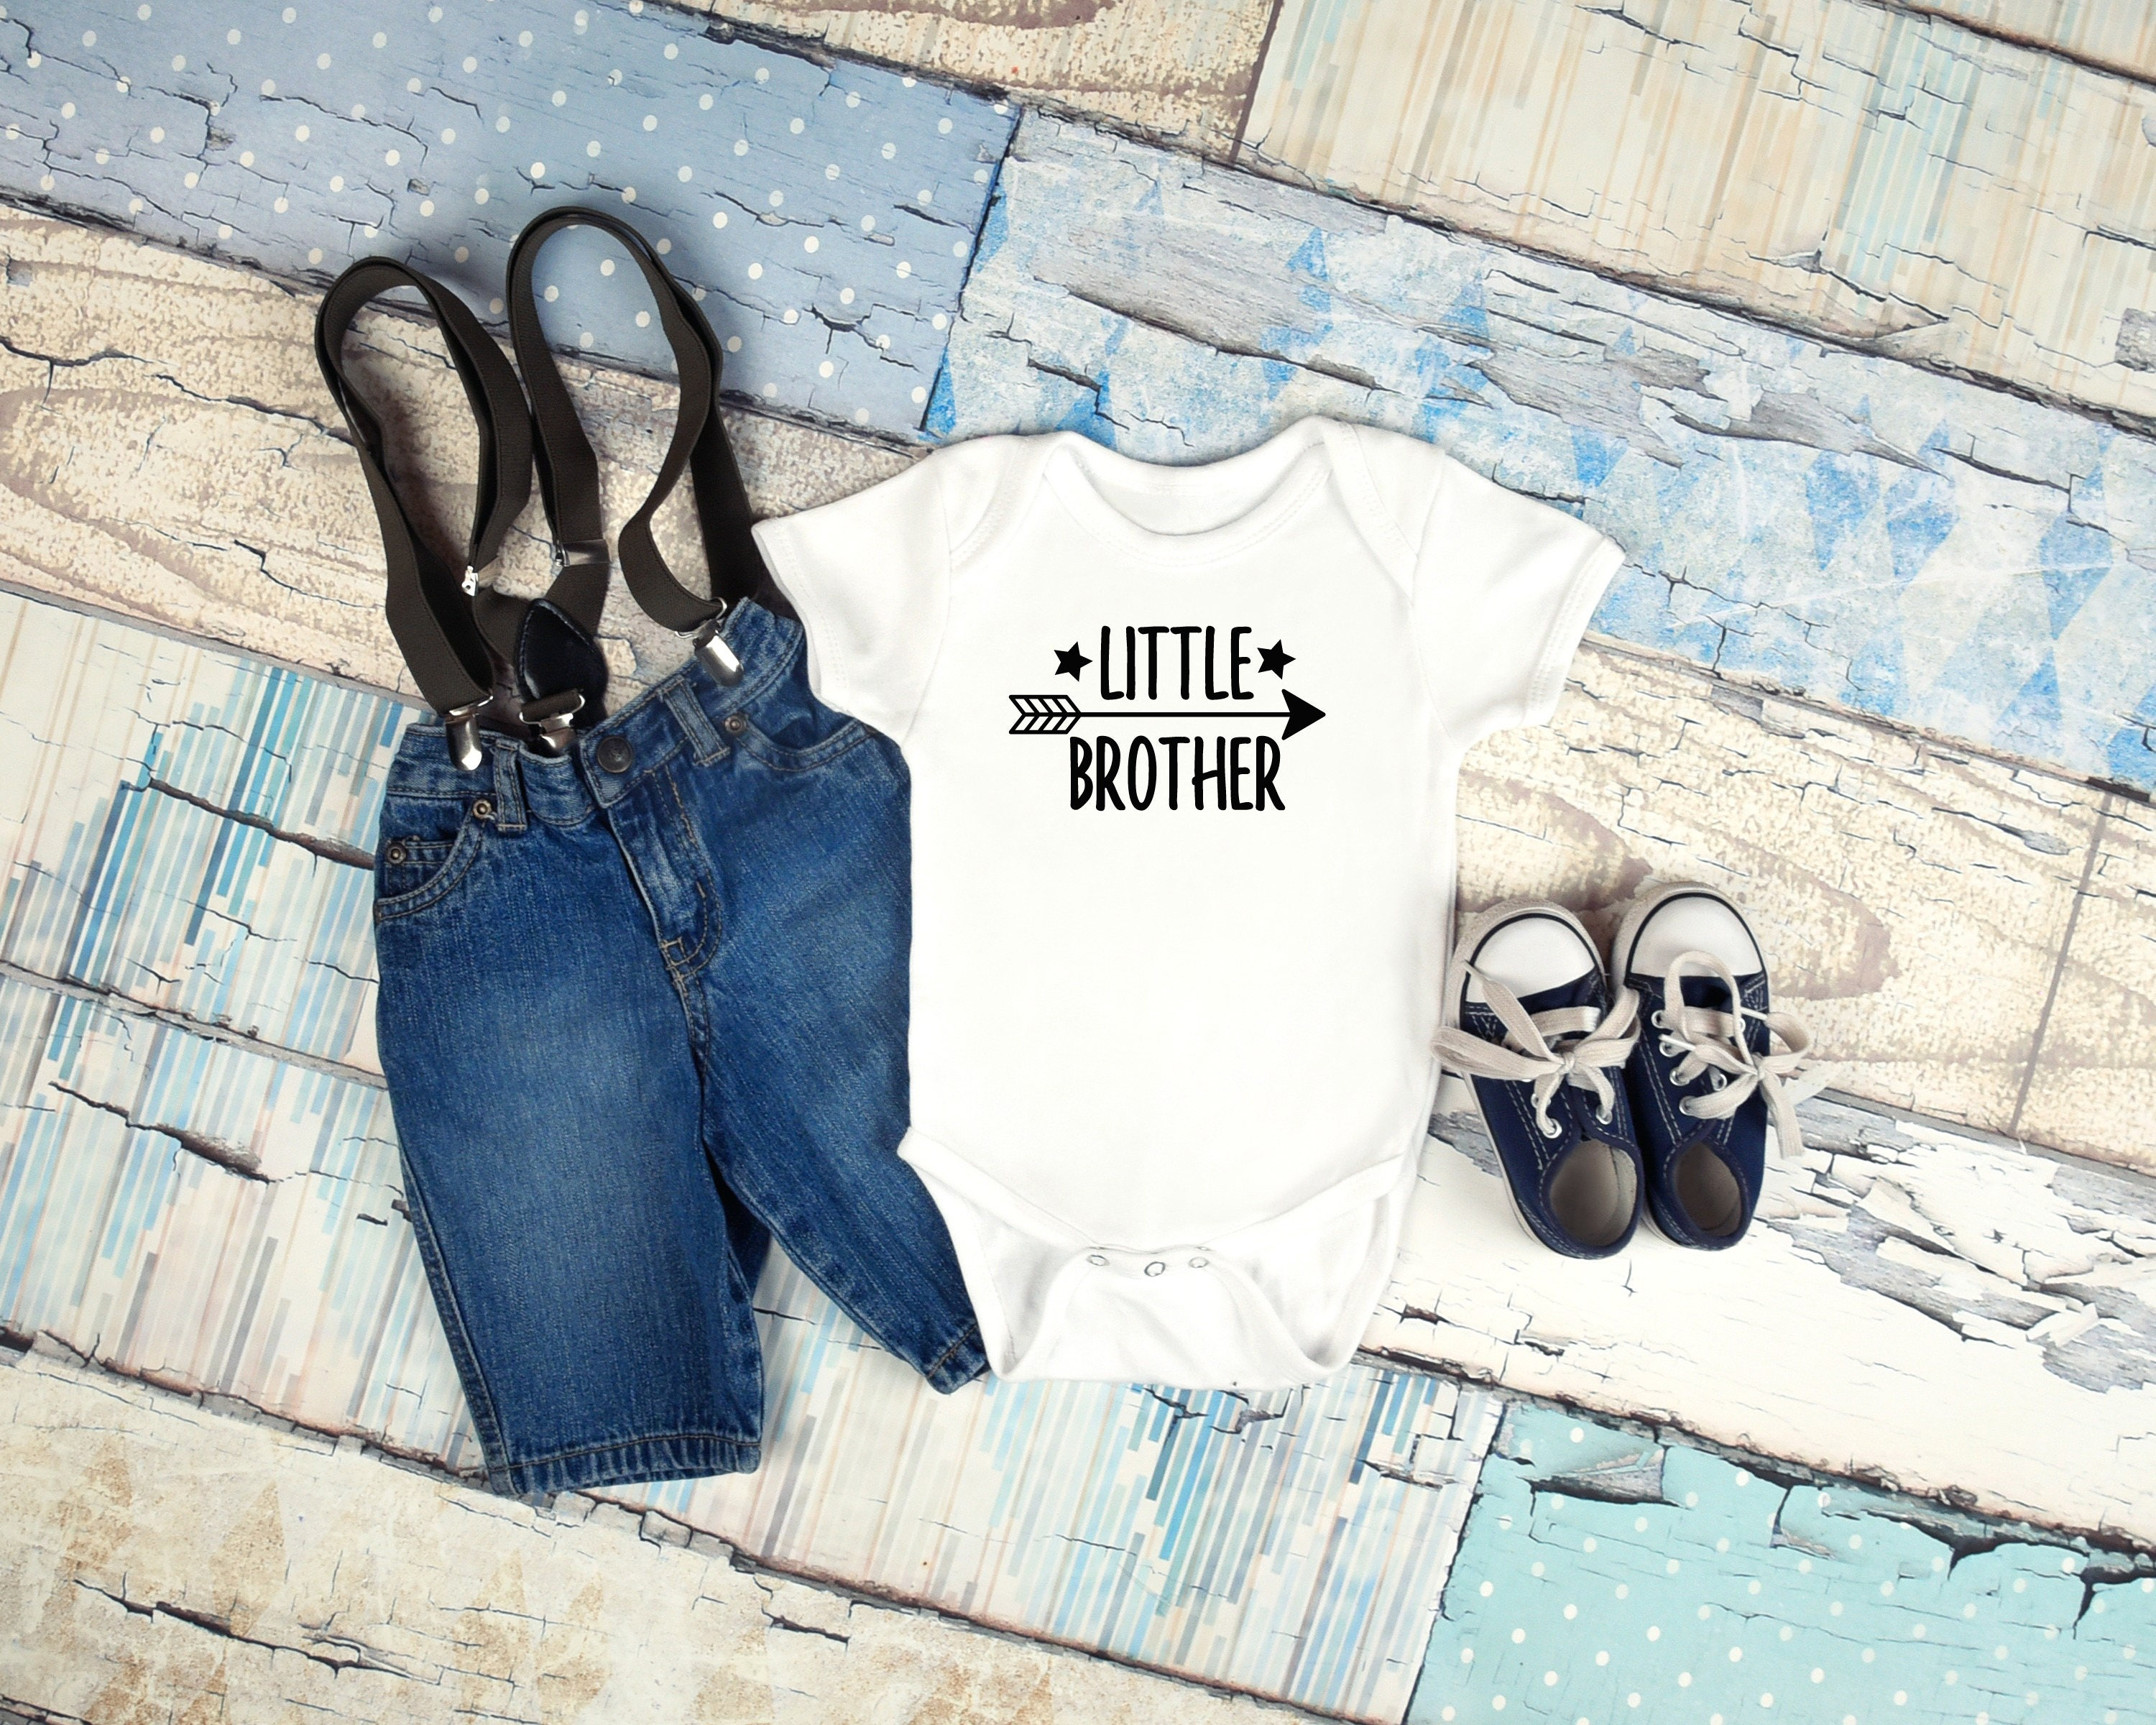 Little brother graphic baby clothing for newborn 6 months 12